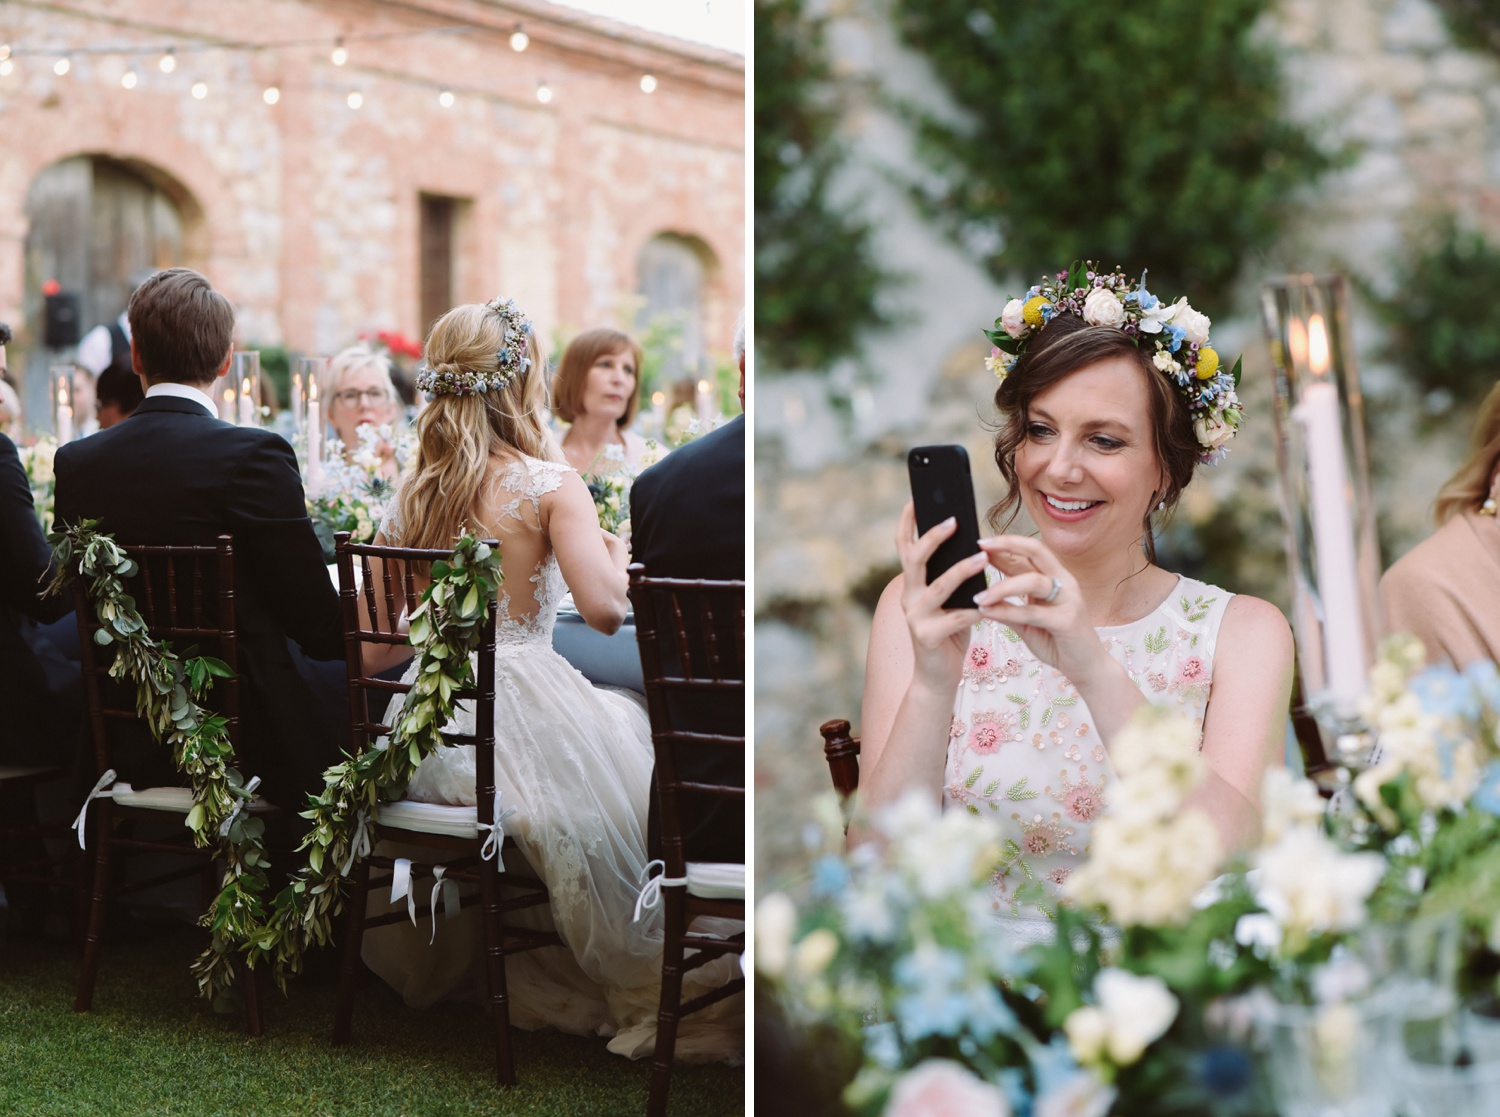 landvphotography_wedding_photographer_tuscany_0115.jpg